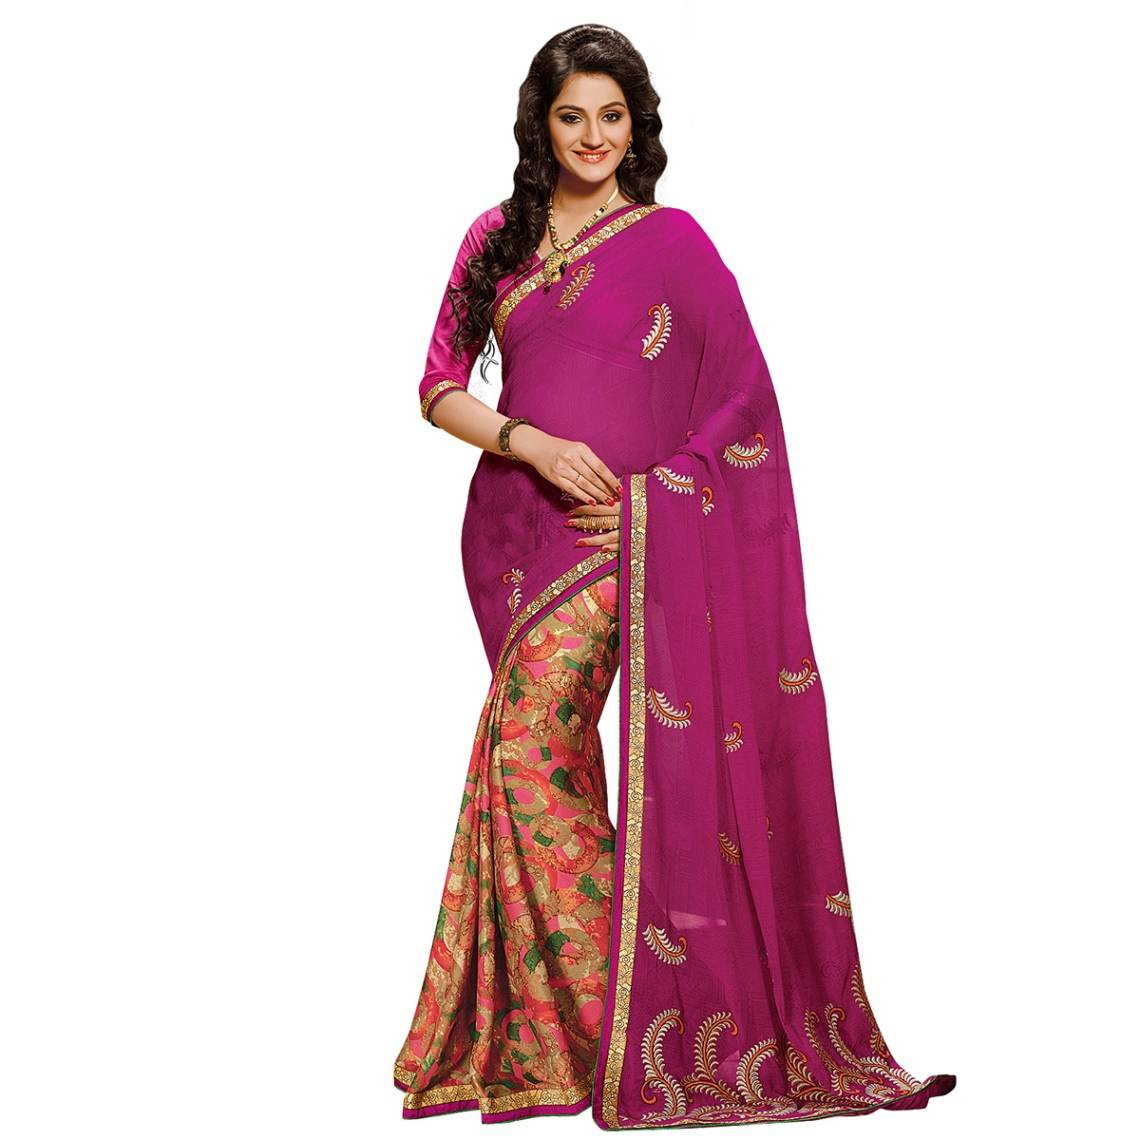 Shonaya Pink Colour Georgette Embroidered Sarees With Blouse PieceSGDN2-4866